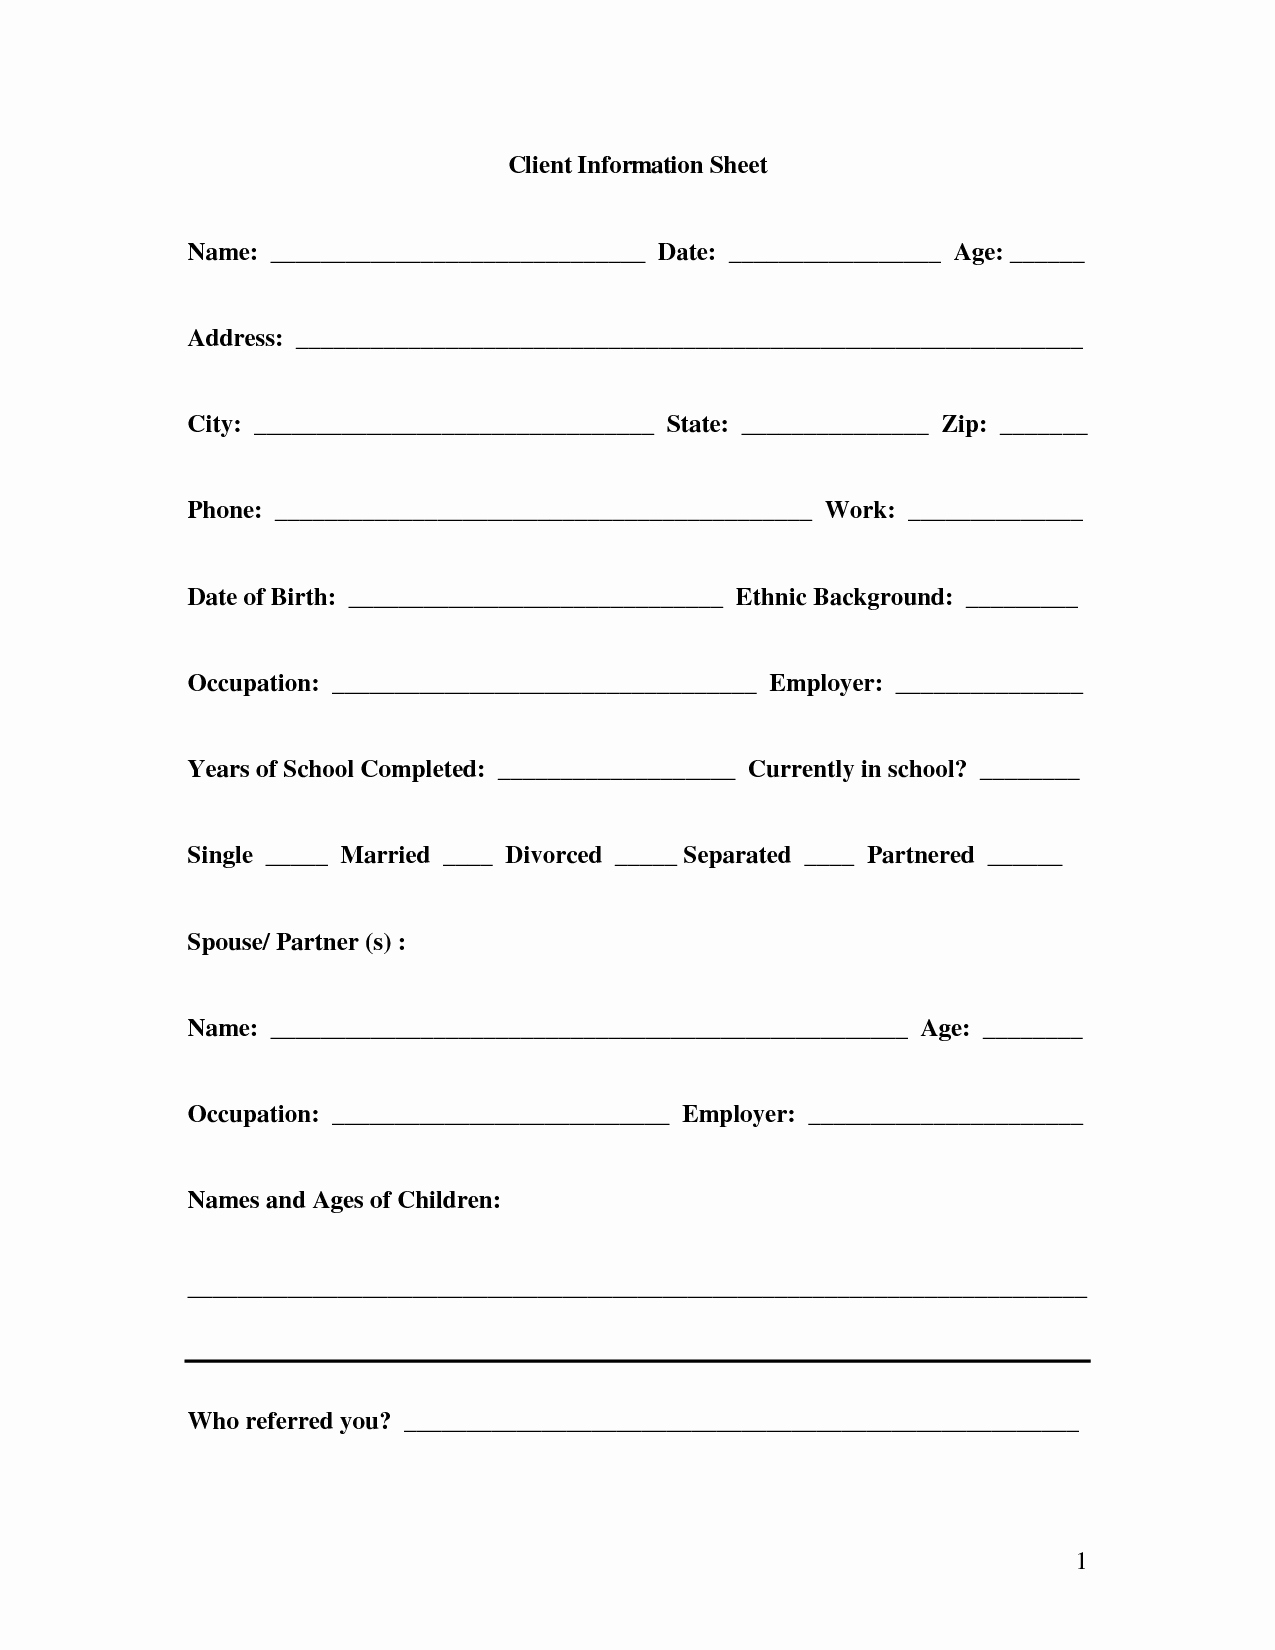 Customer Information form Template New Client Information Sheet Template 2